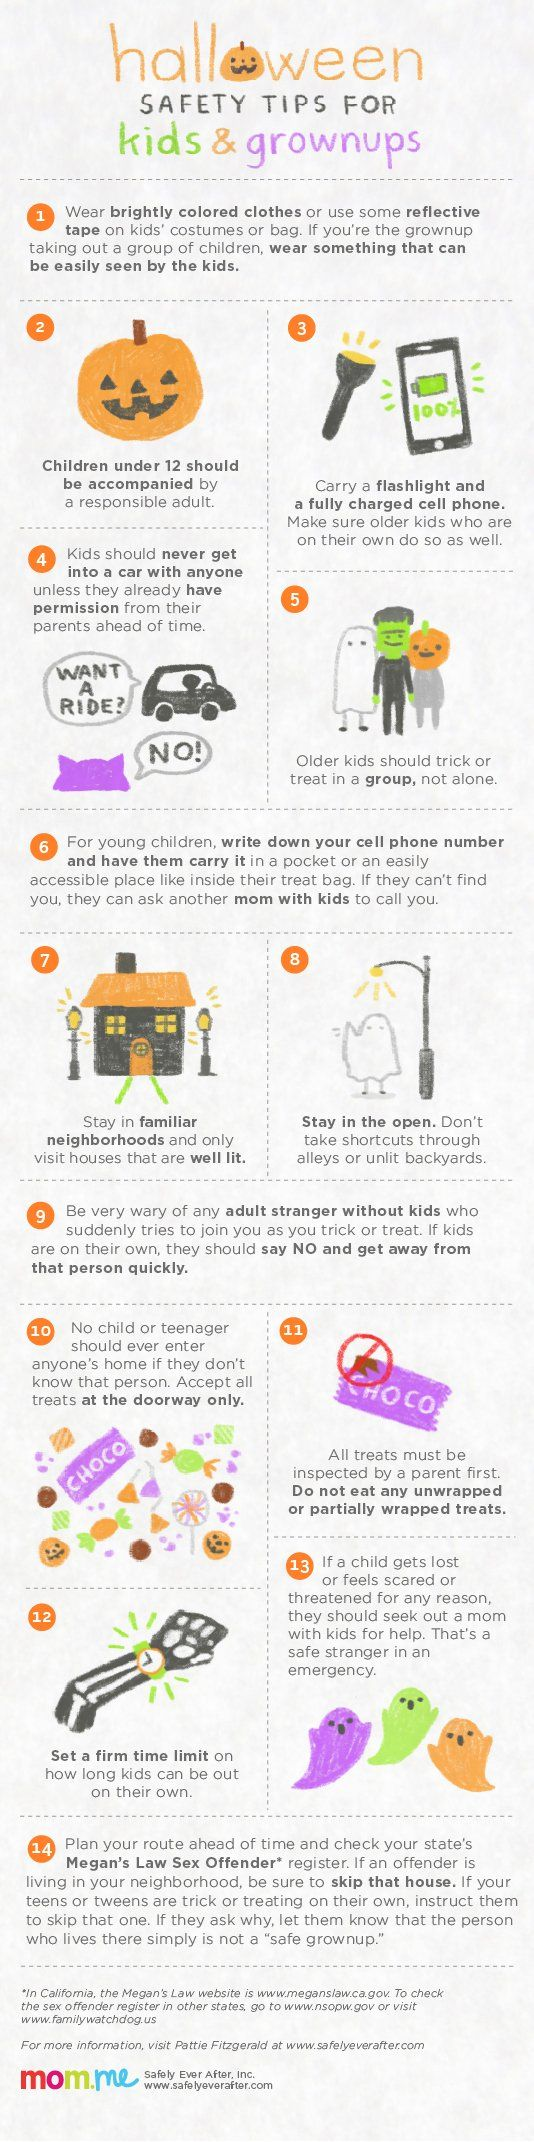 The Ultimate Halloween Safety Guide: Your must-have guide to keeping your kids safe on Halloween